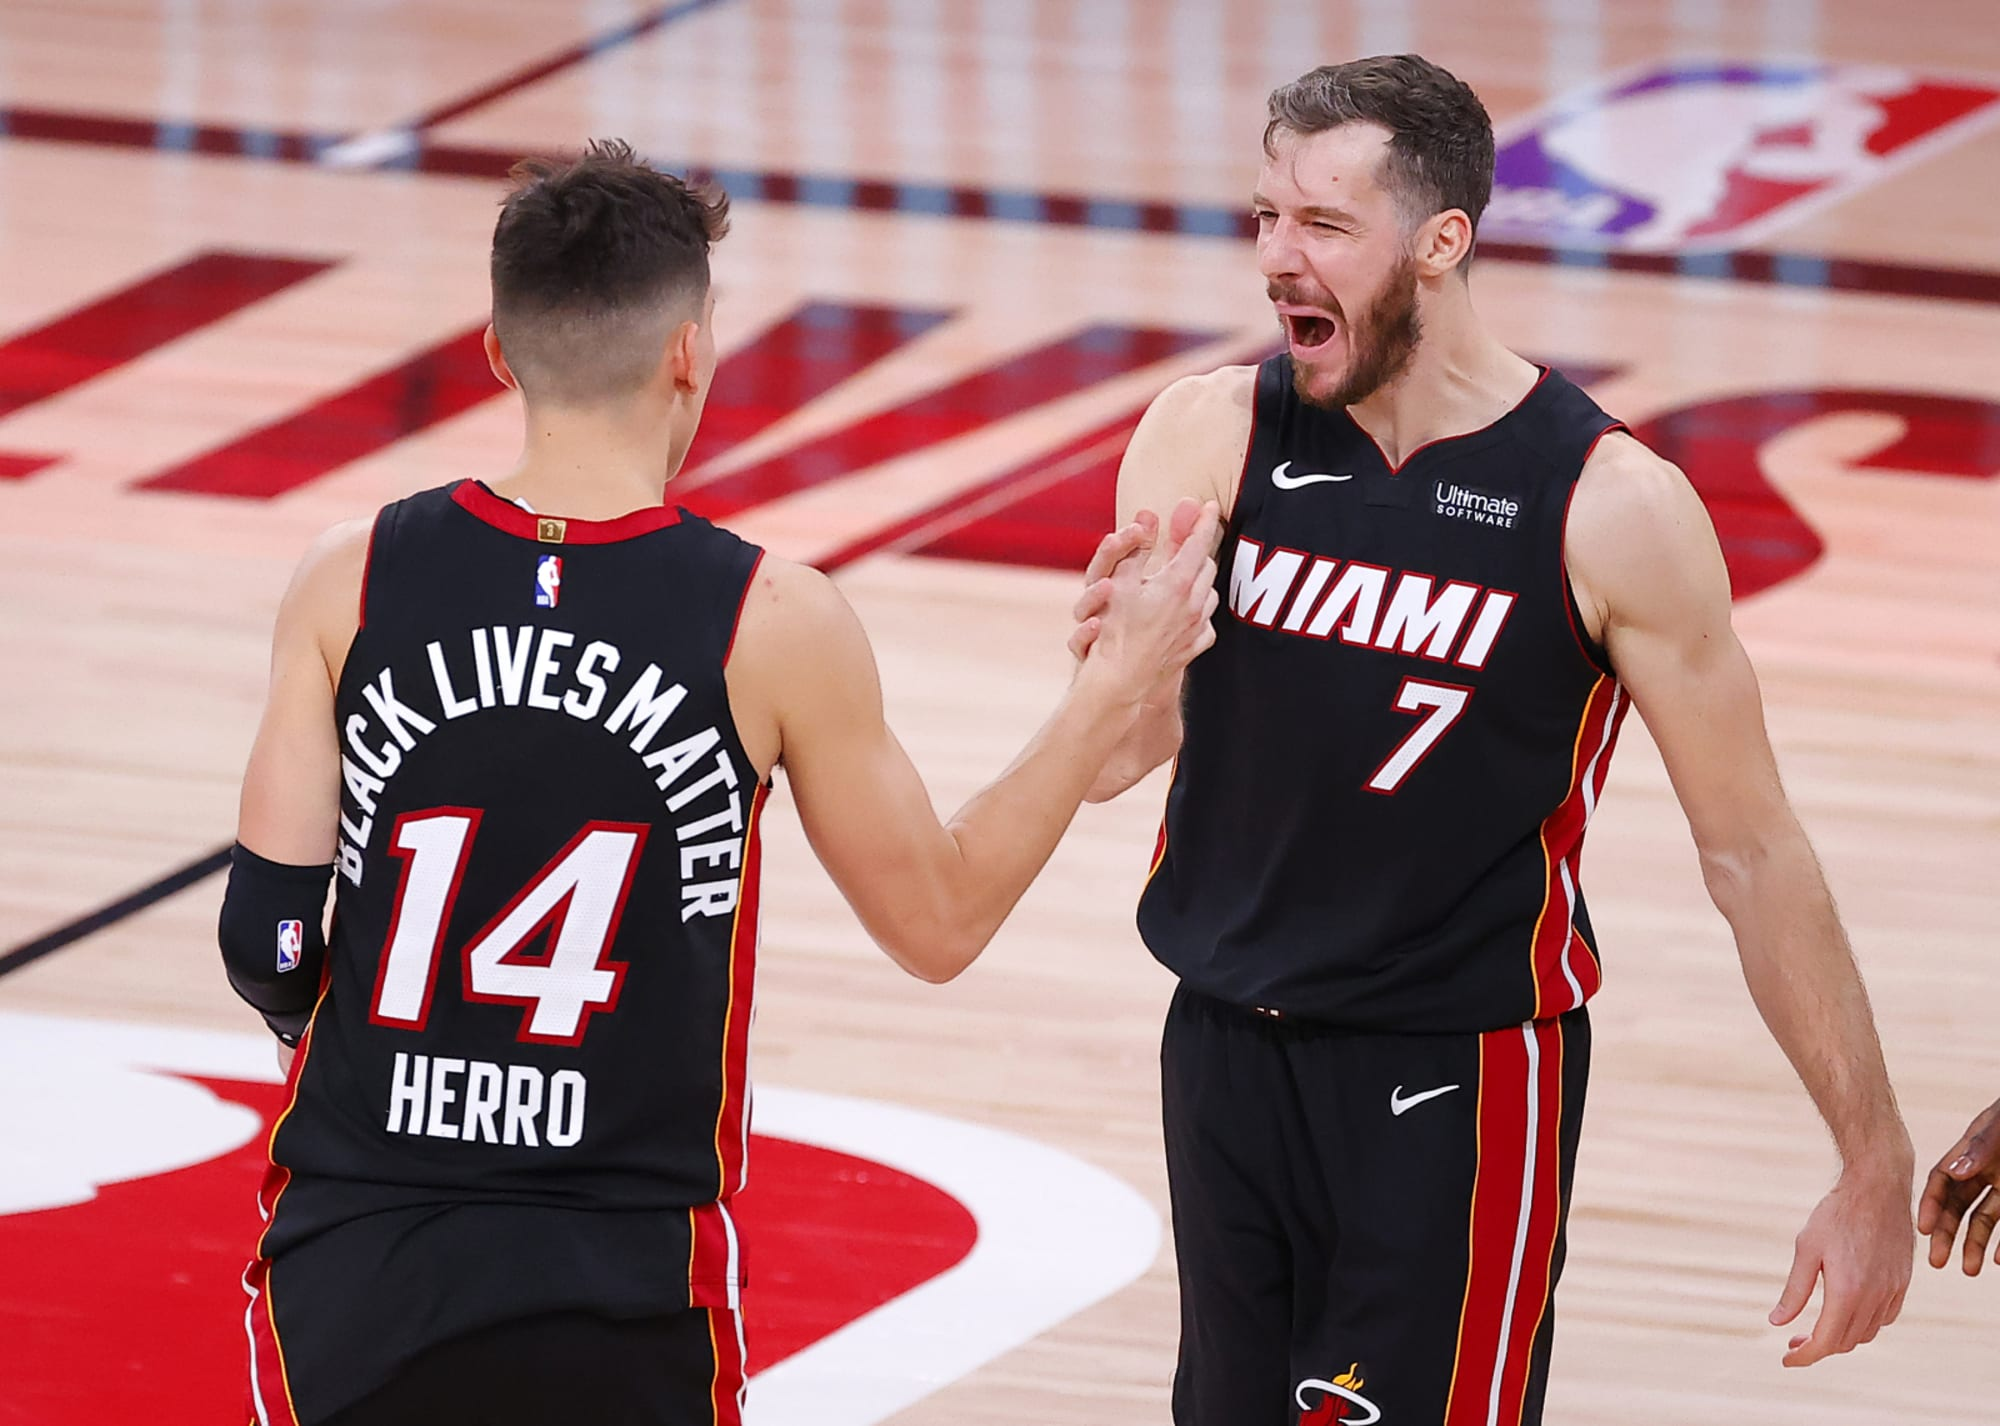 Miami Heat: Return of Boy Wonder, The Dragon could spark a deep playoff run